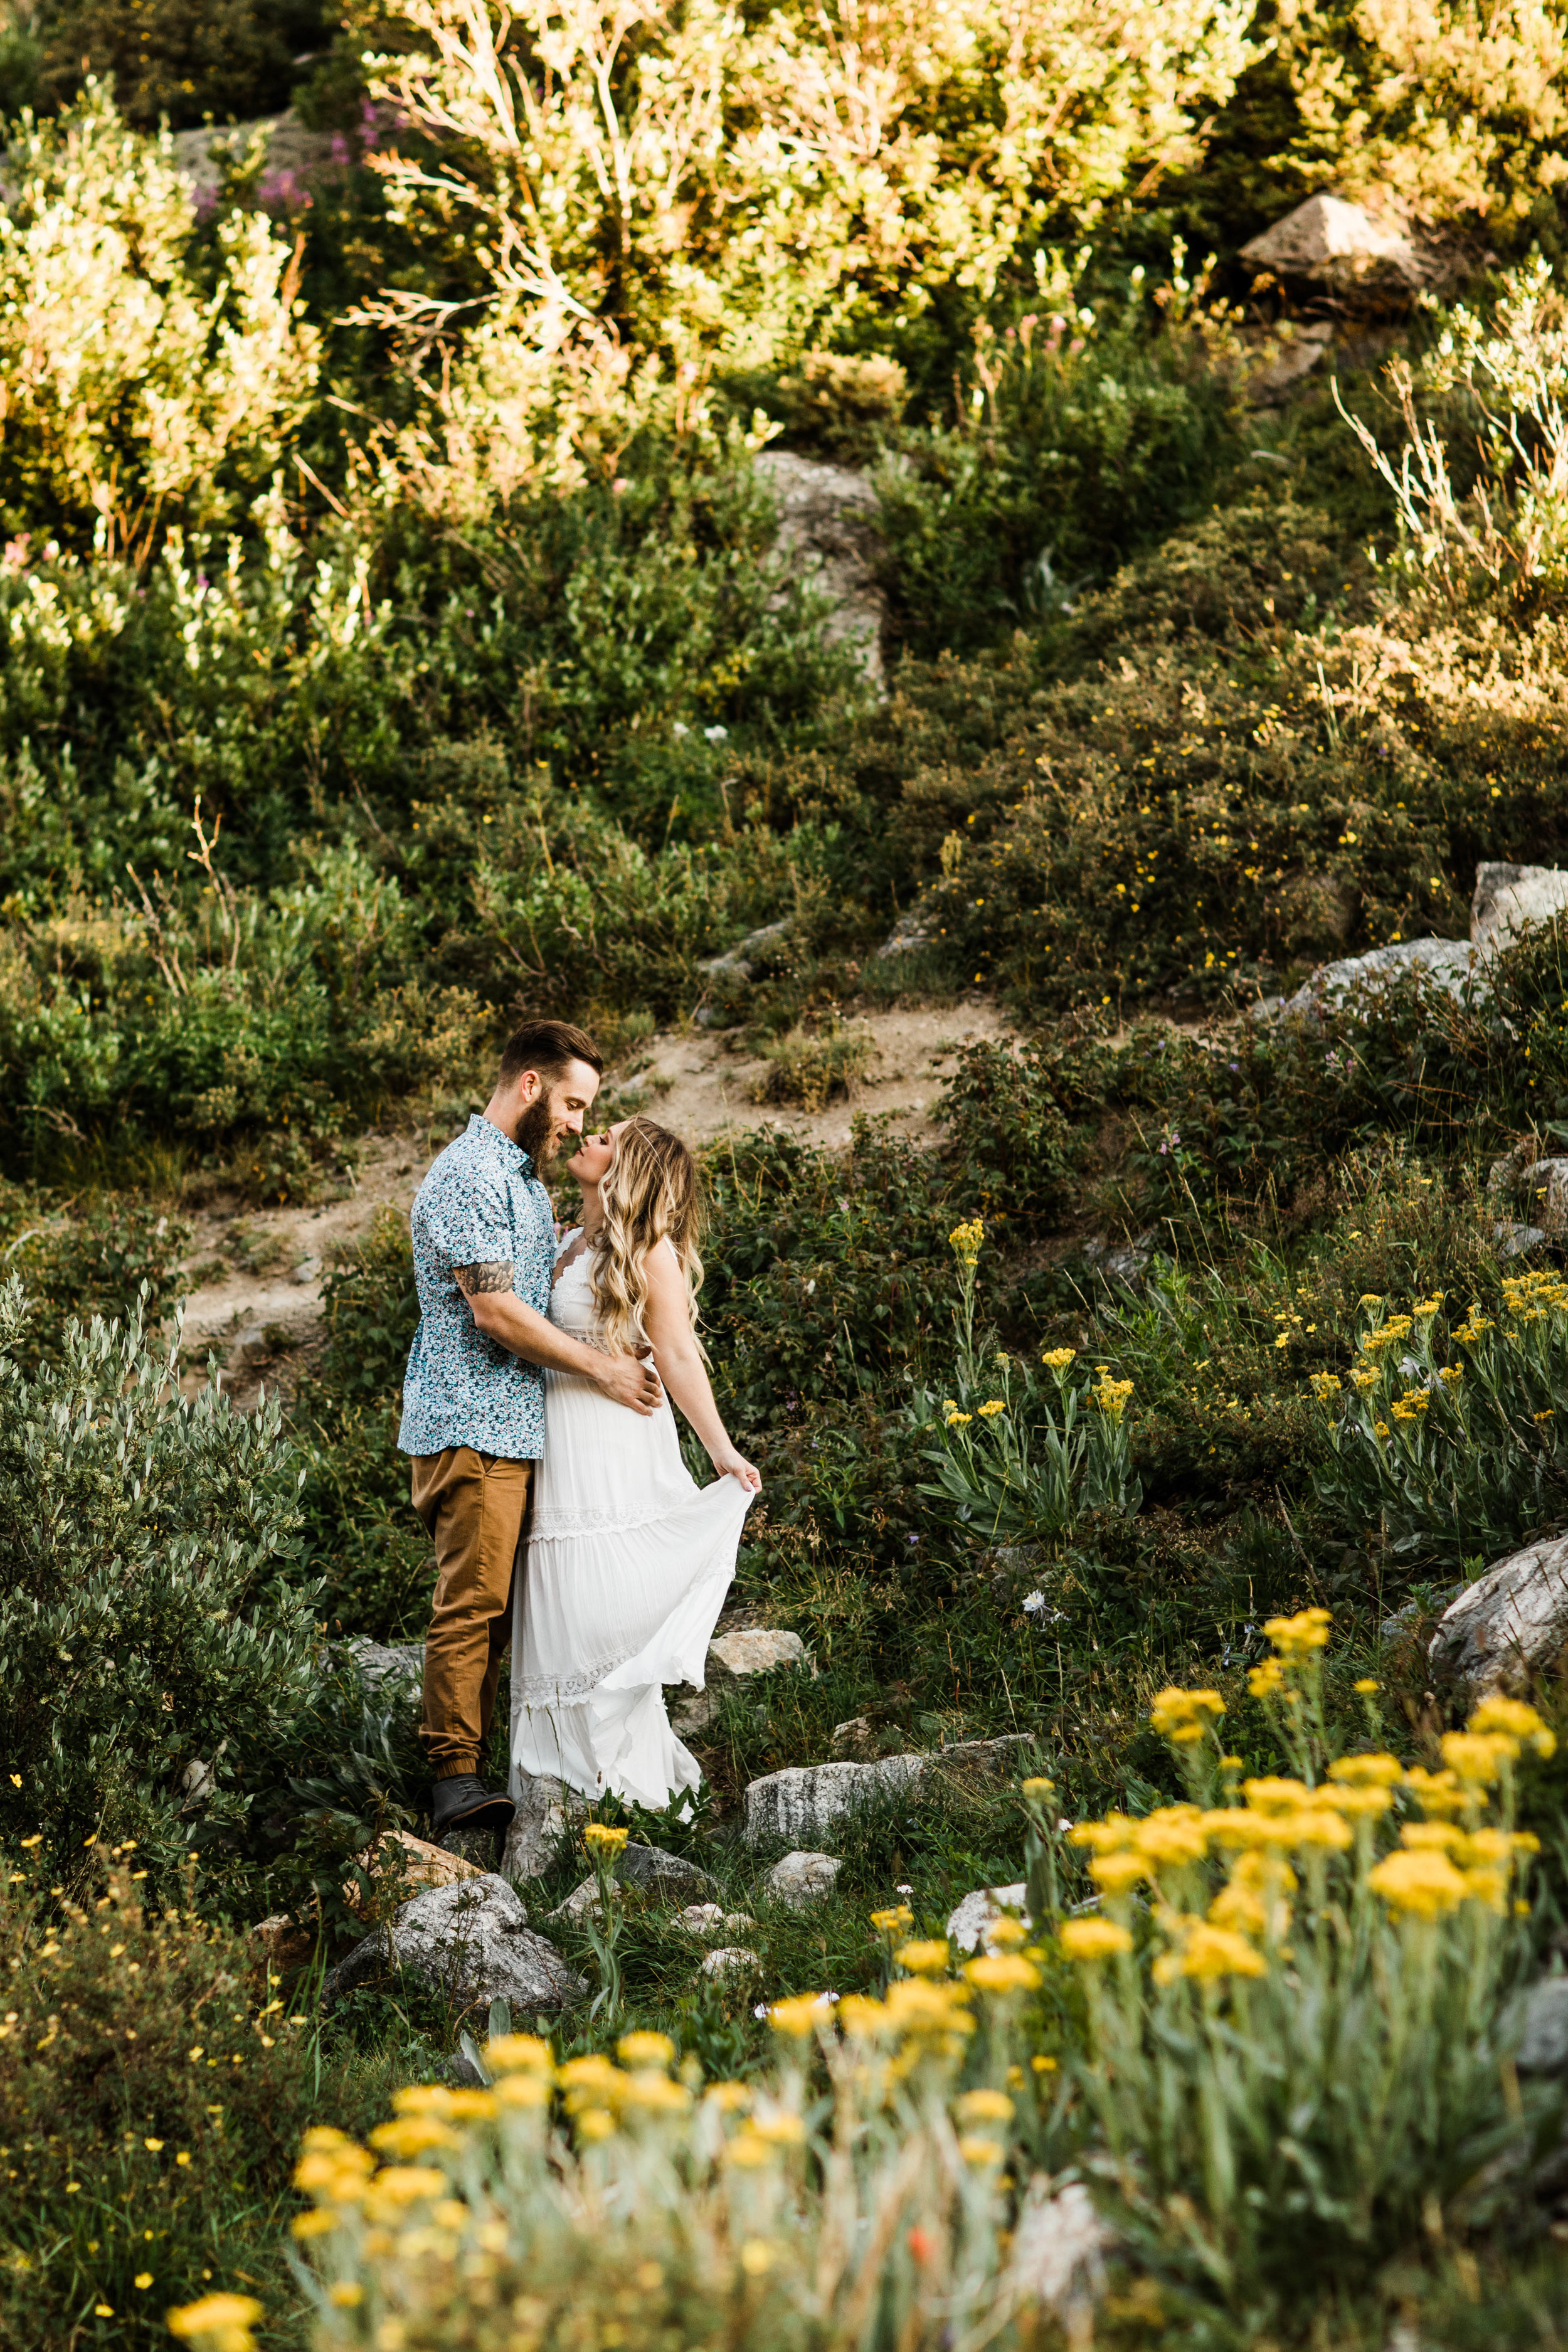 eloping couple kissing in an alpine wildflower field | Breckenridge elopement and adventure wedding photographers